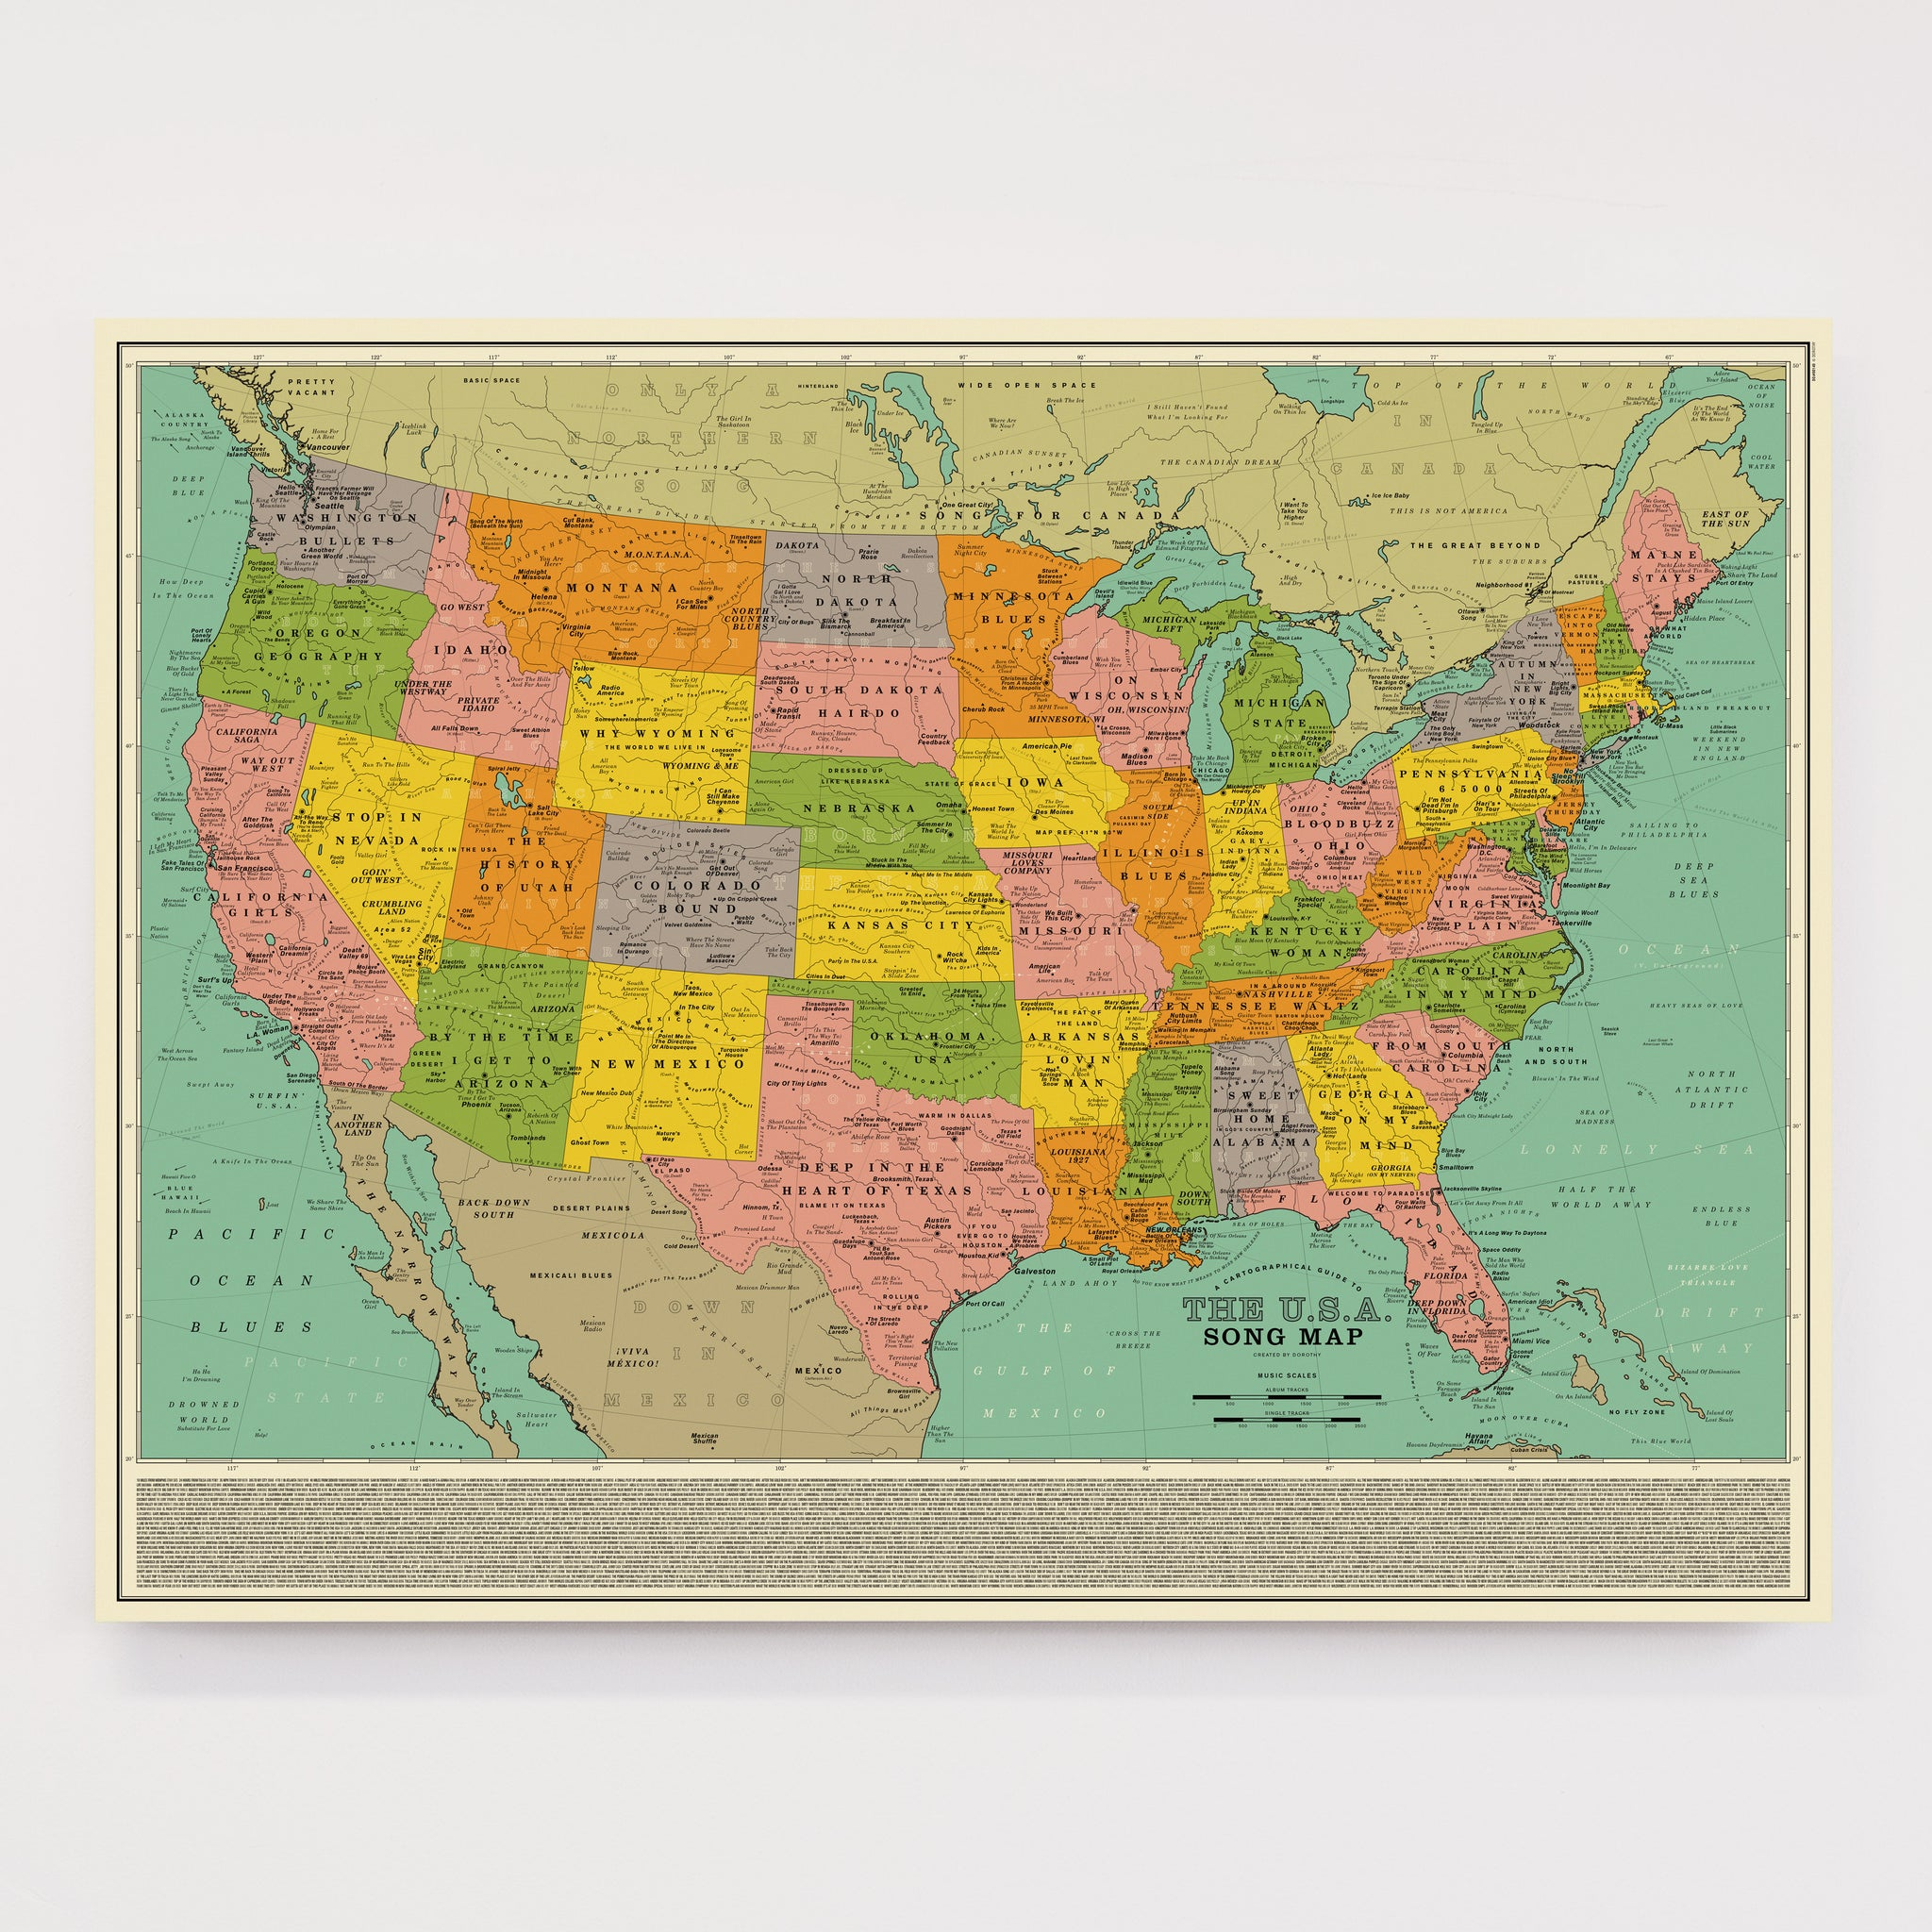 U.S.A. Song Map - Open Edition – Dorothy